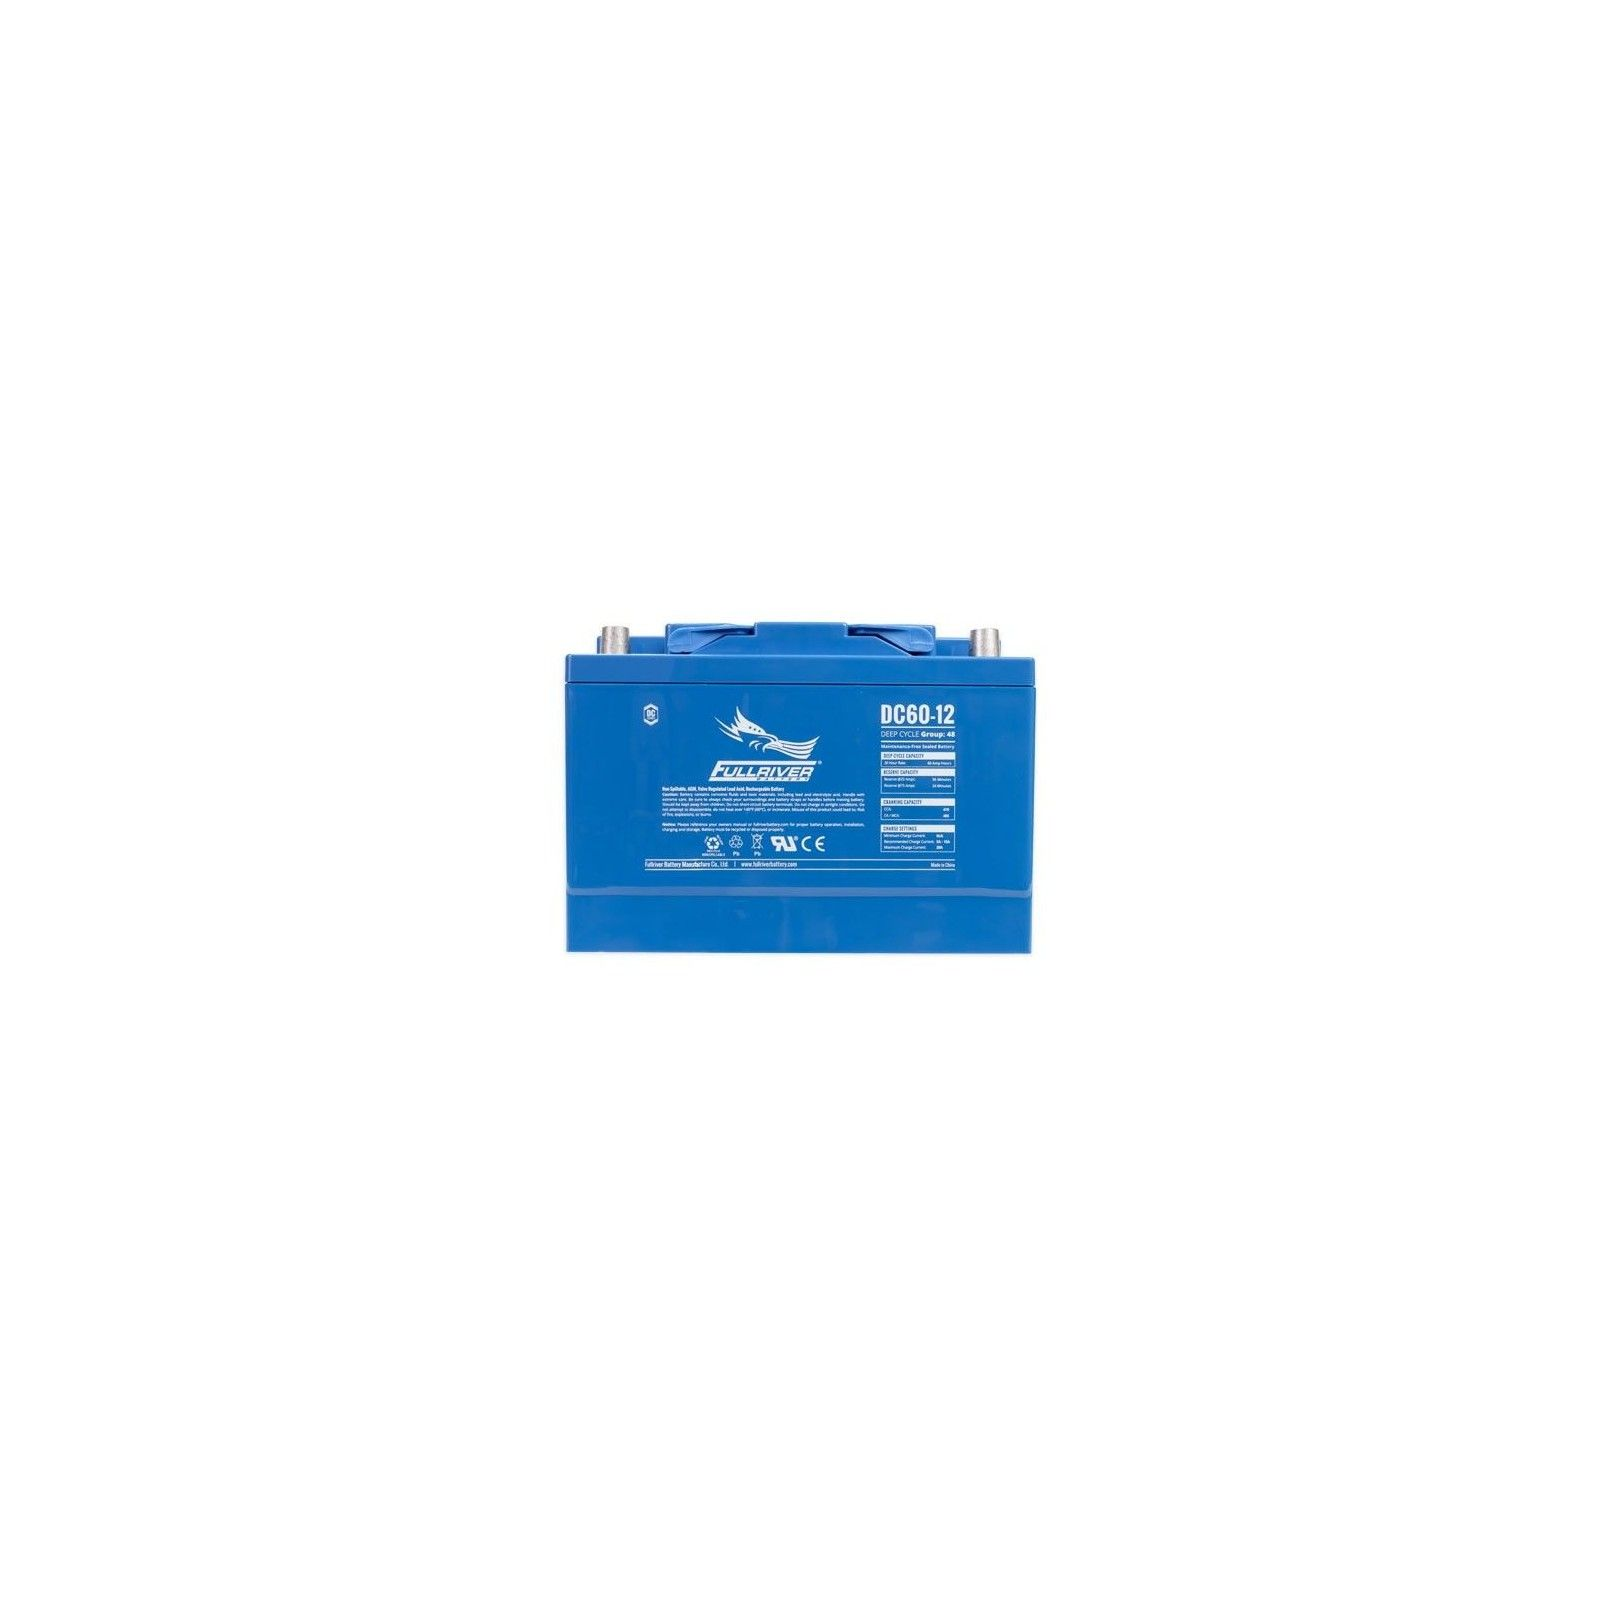 BATTERY VARTA B32 12V 45AH 330A  - 1